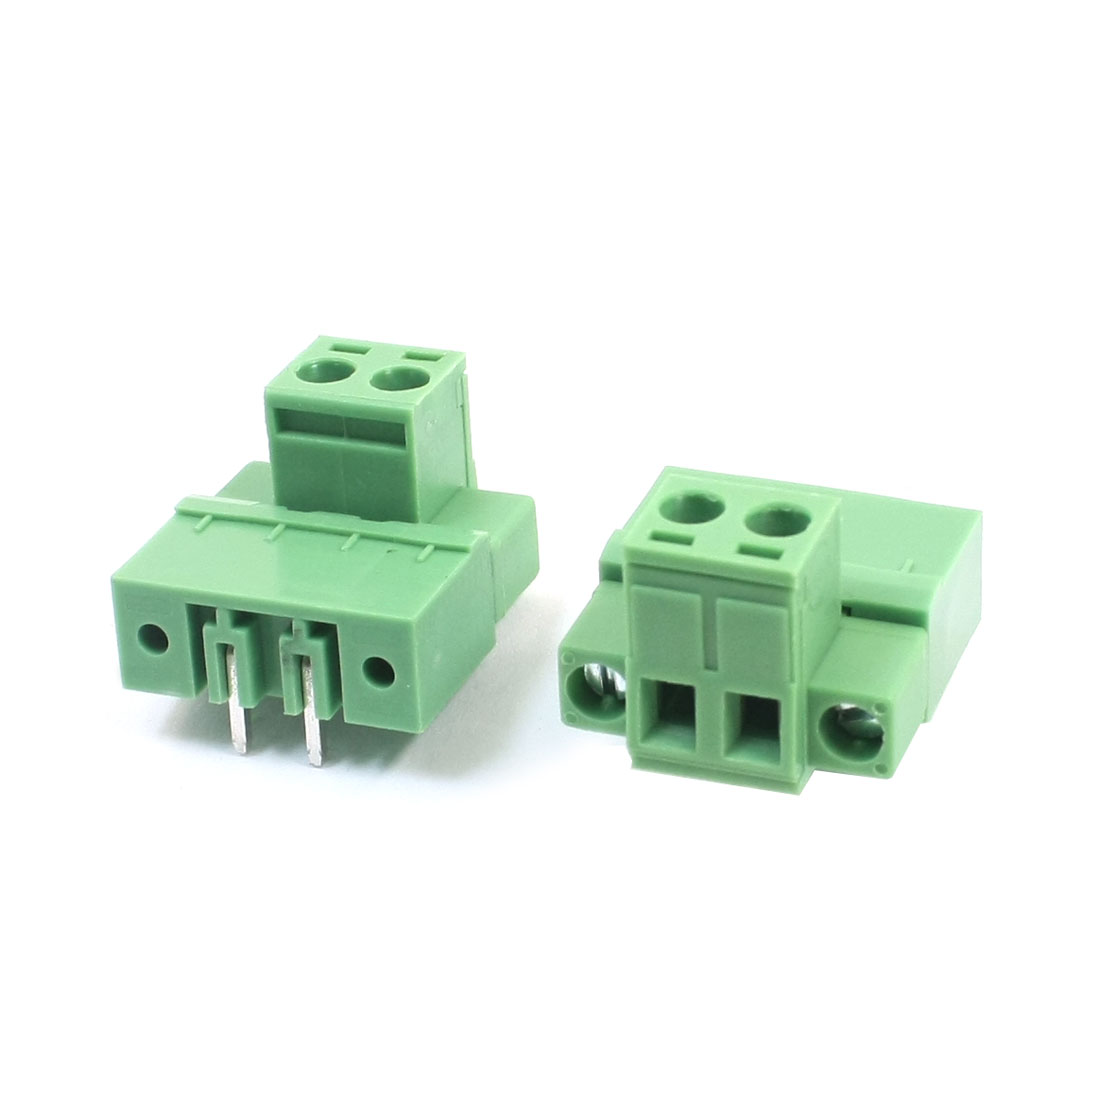 2Pcs AC 300V 5.08mm Spacing Right Angled Pluggable Type Through Hole PCB Terminal Barrier Block Connector Green